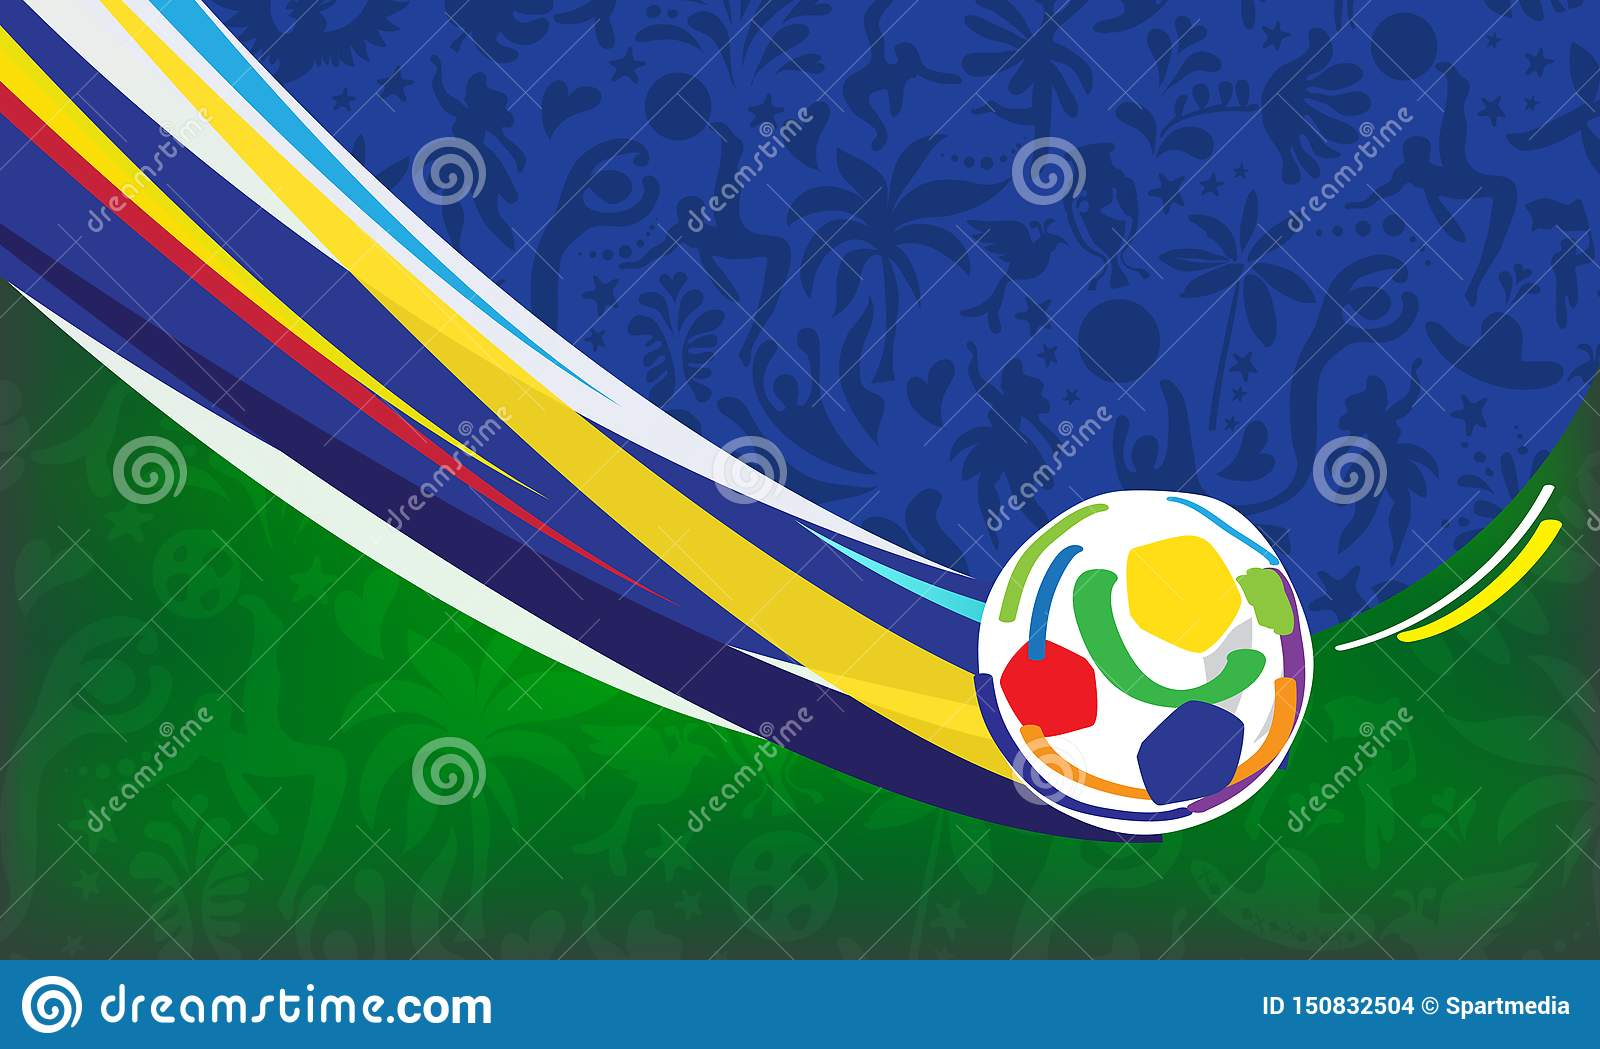 Обои flag, fireworks, football, Brasil. Спорт foto 16